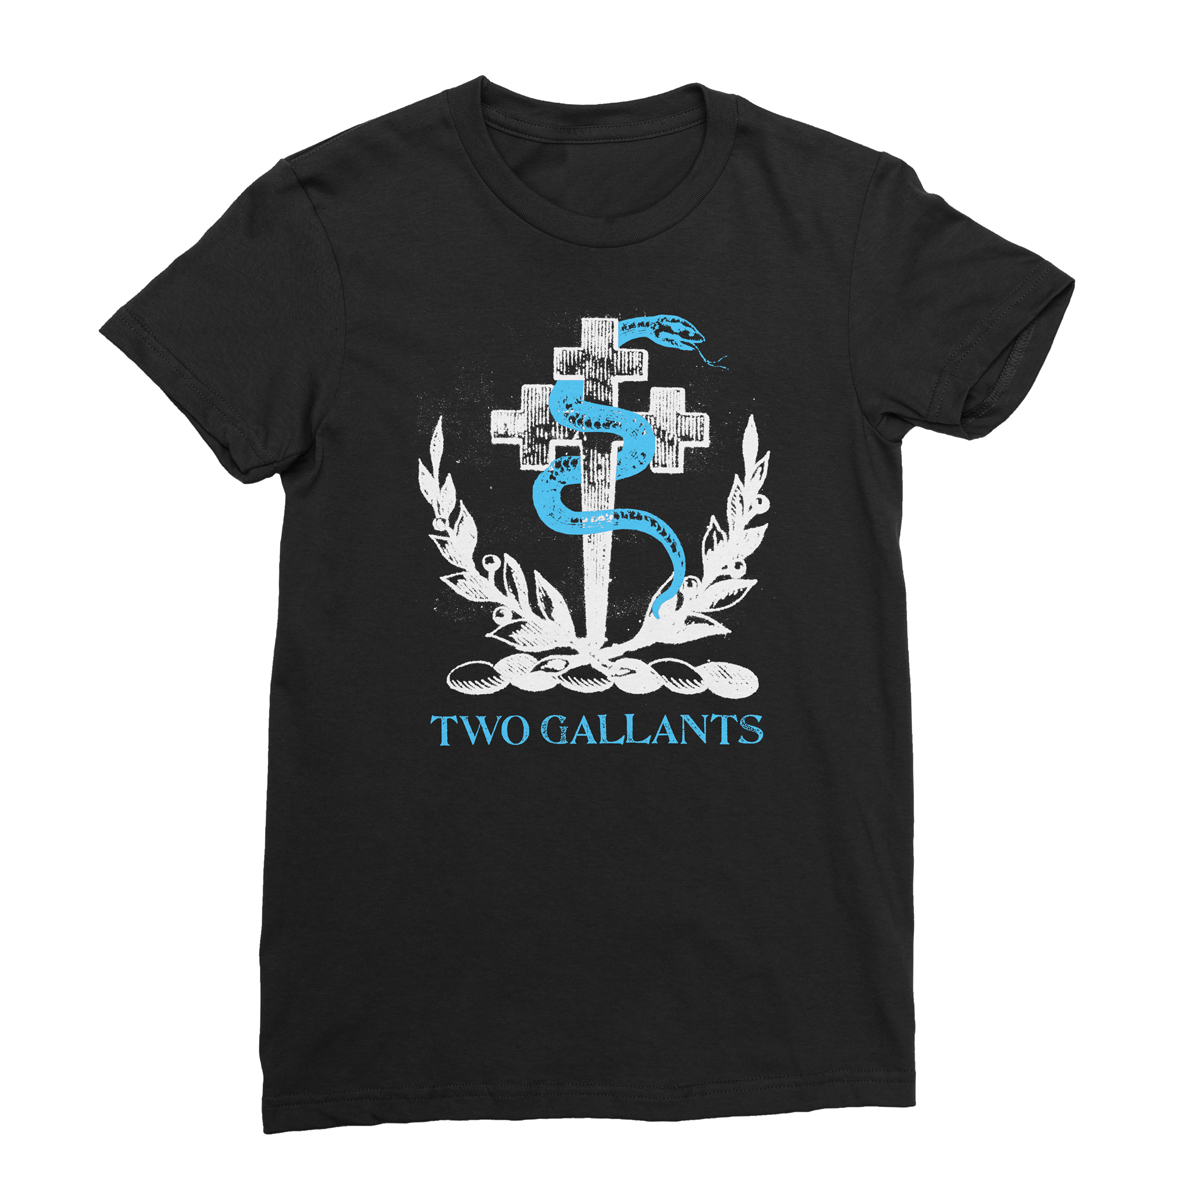 Crest Tee - Black - Two Gallants